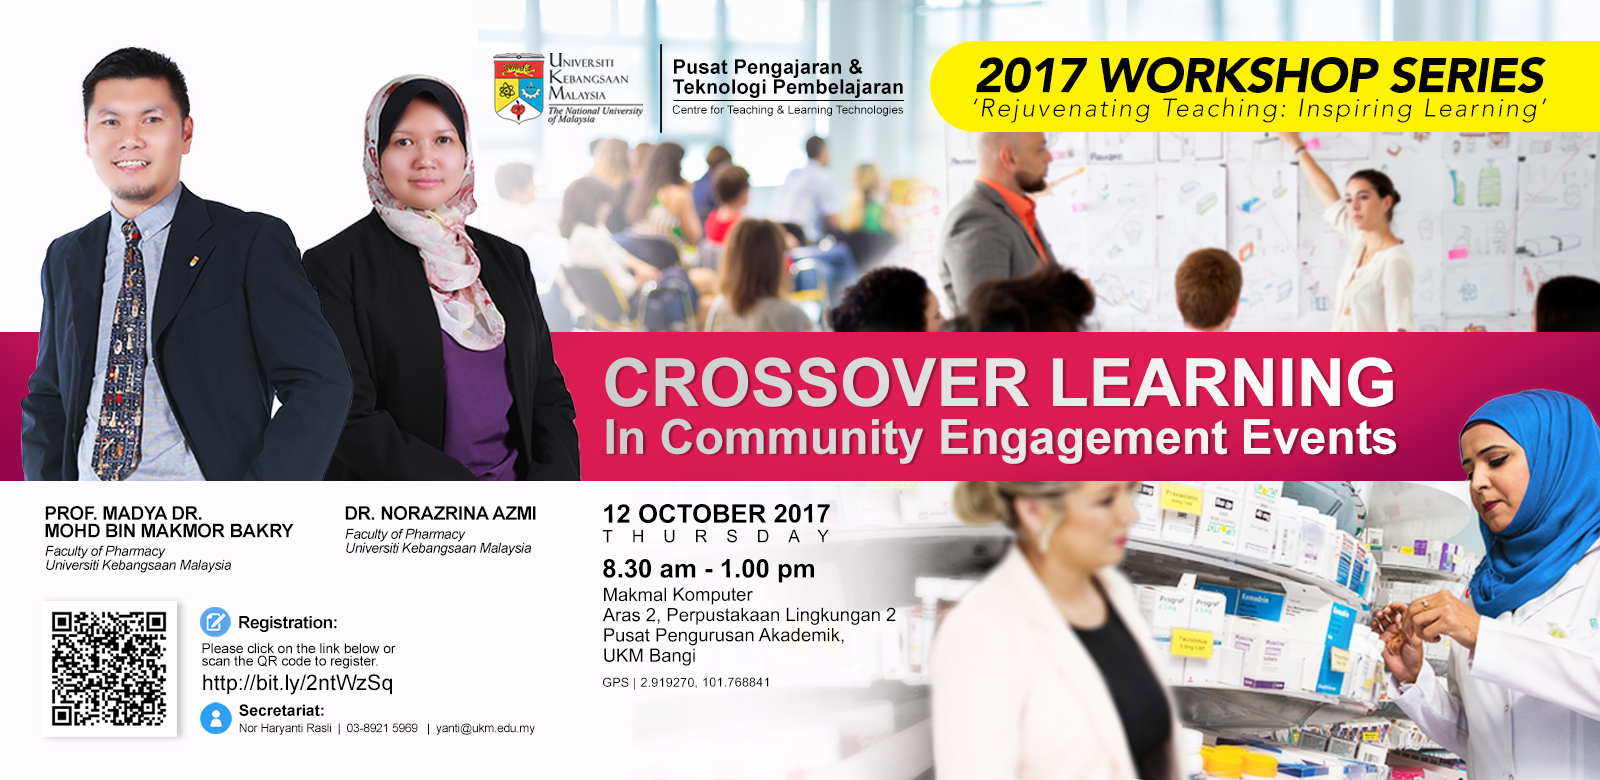 CROSSOVER LEARNING IN COMMUNITY ENGAGEMENT EVENTS